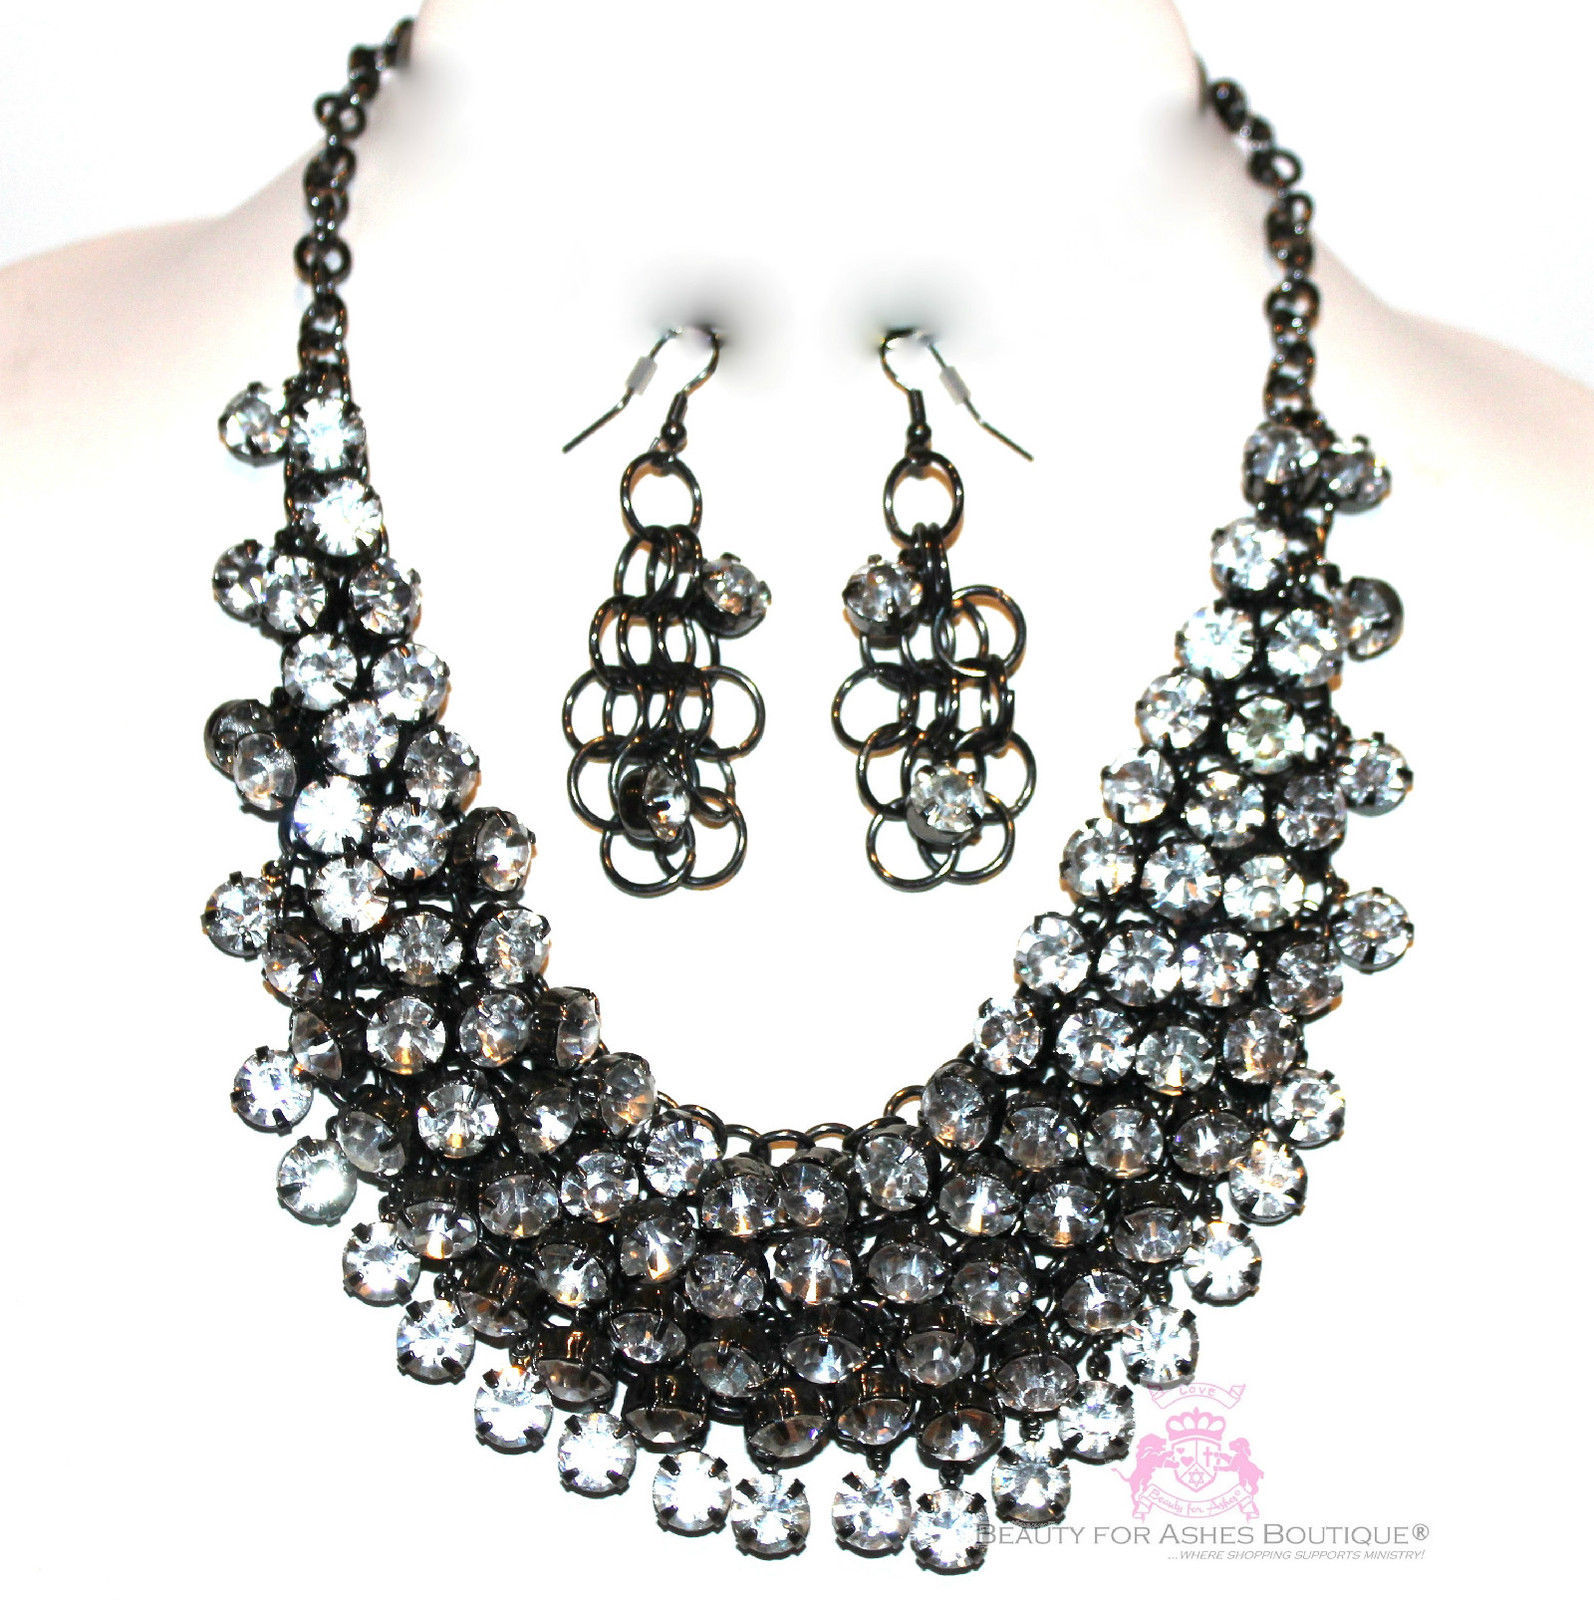 Chunky Womens Dressy Clear Prom Cascading Hematite Crystals Bib Necklace Set